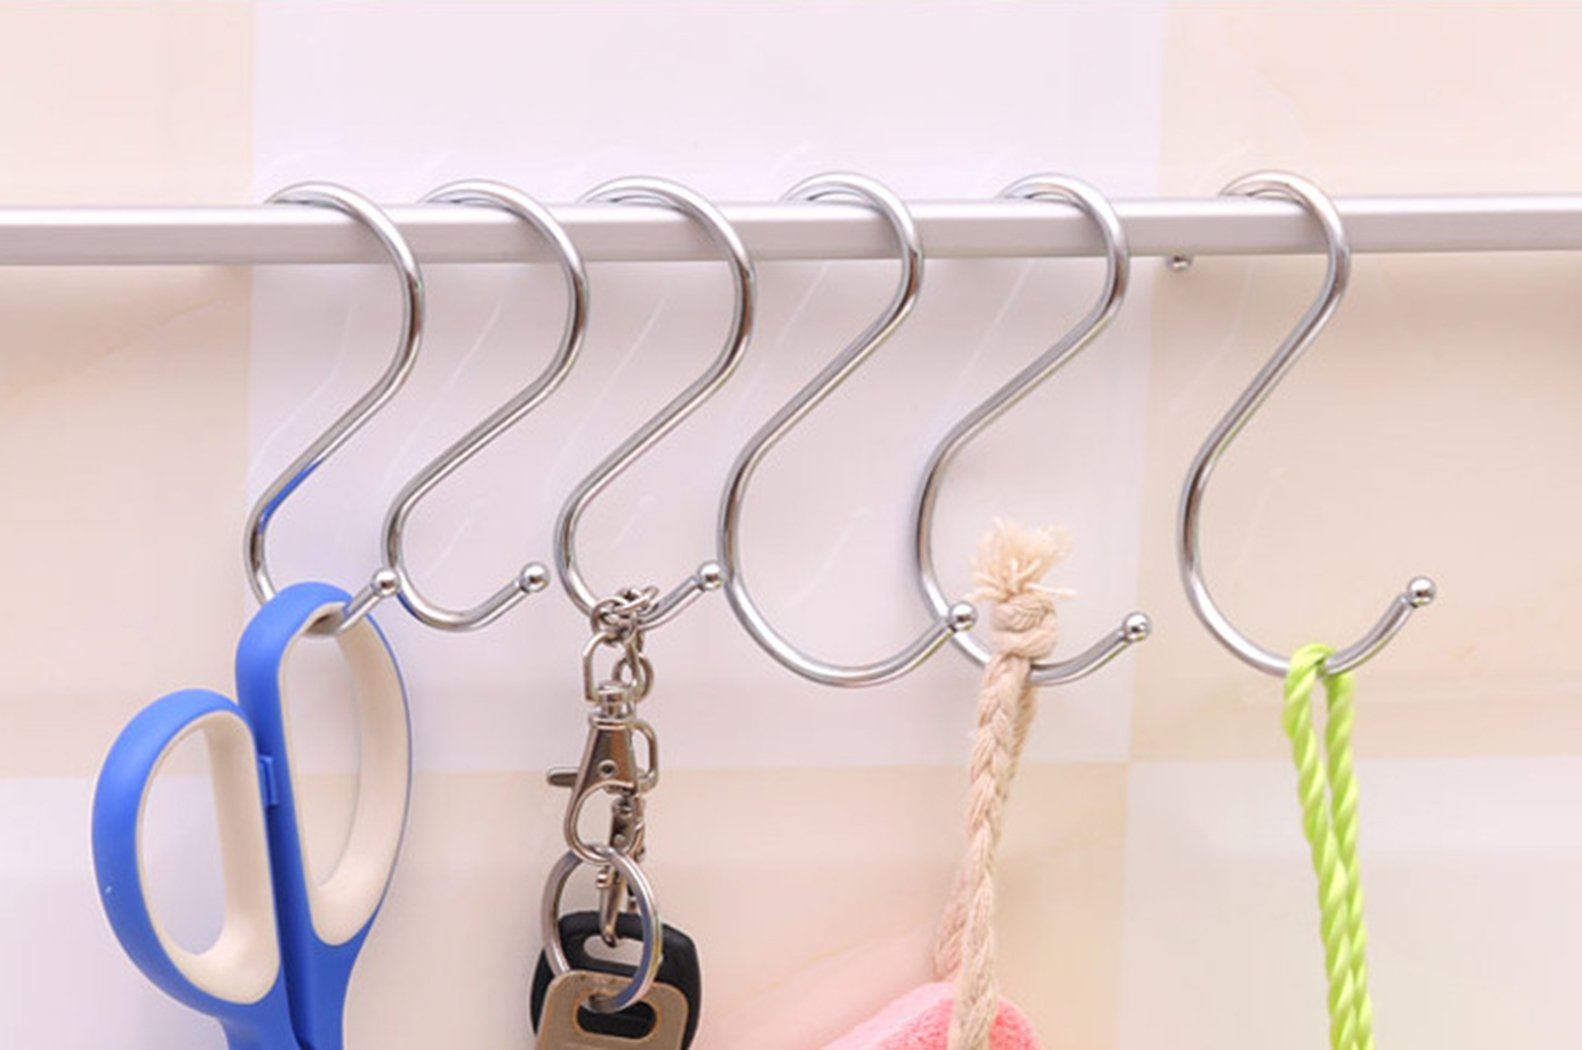 Giantstar 20 Pack  Heavy Duty S Hooks Kitchen Pot Pan Hanger Clothes Storage Rack Size:Large (20pcs/L) by Giant star (Image #3)